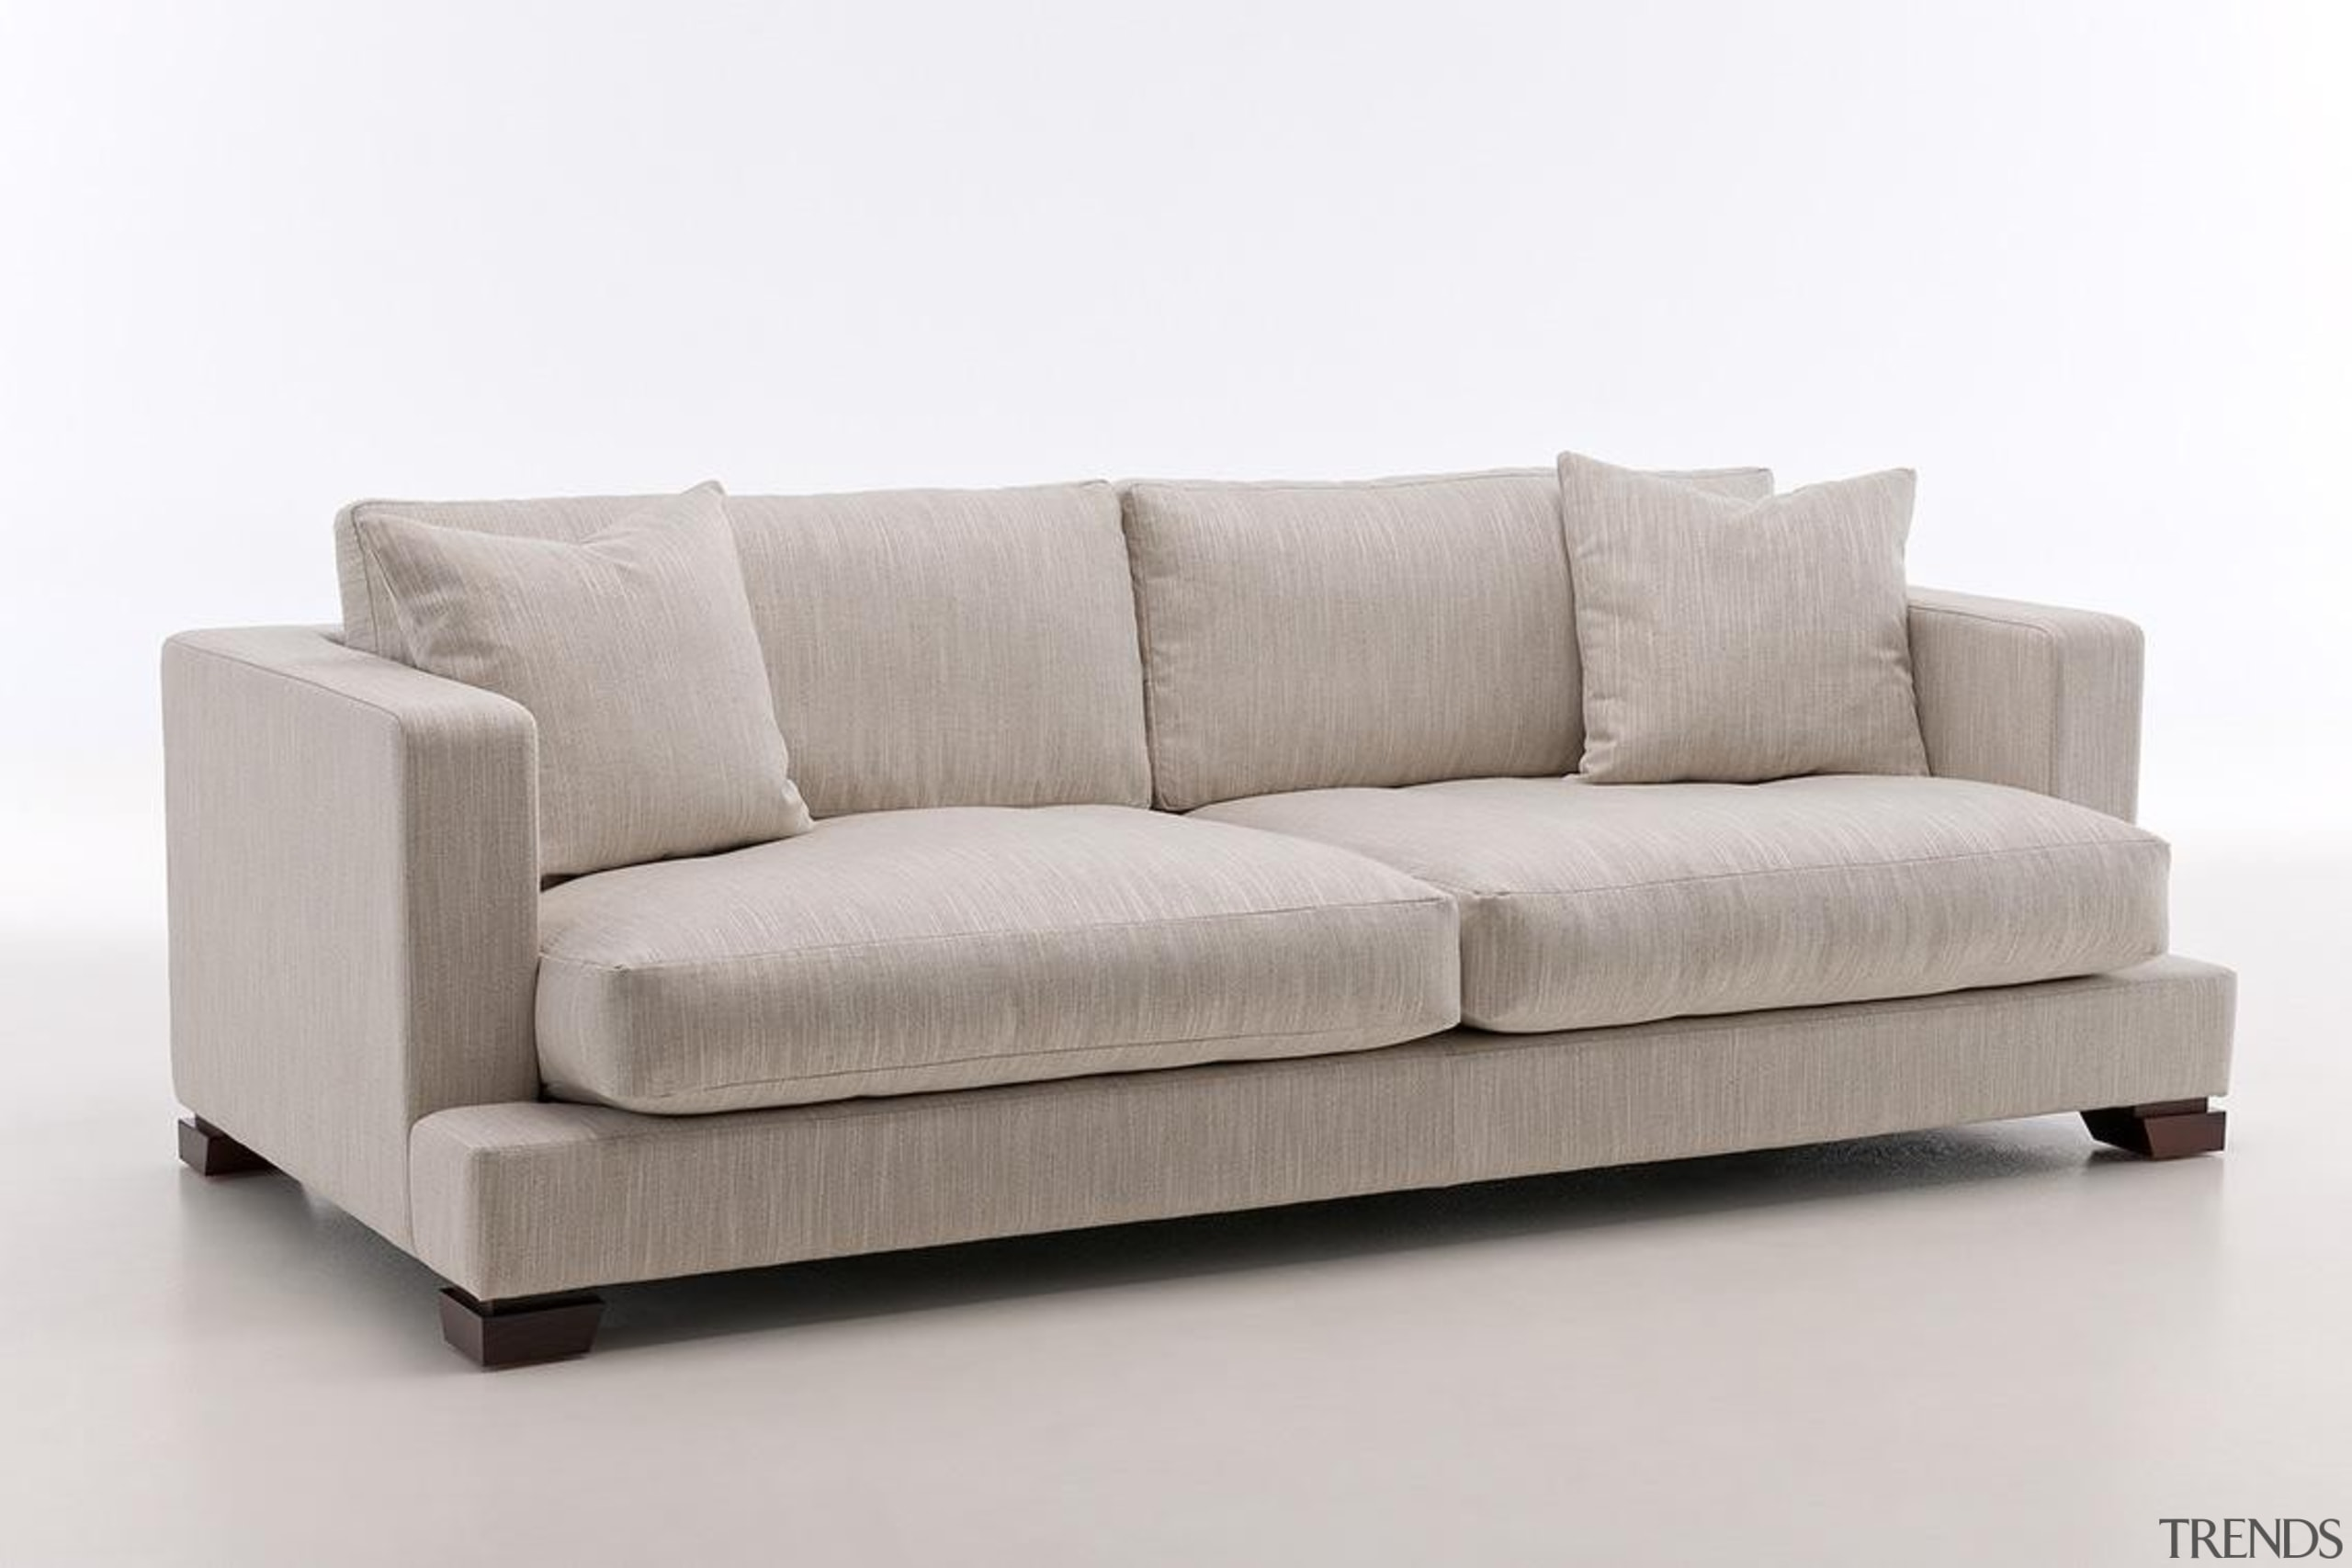 George Modular settee - George Modular settee - angle, couch, furniture, loveseat, product, sofa bed, studio couch, gray, white